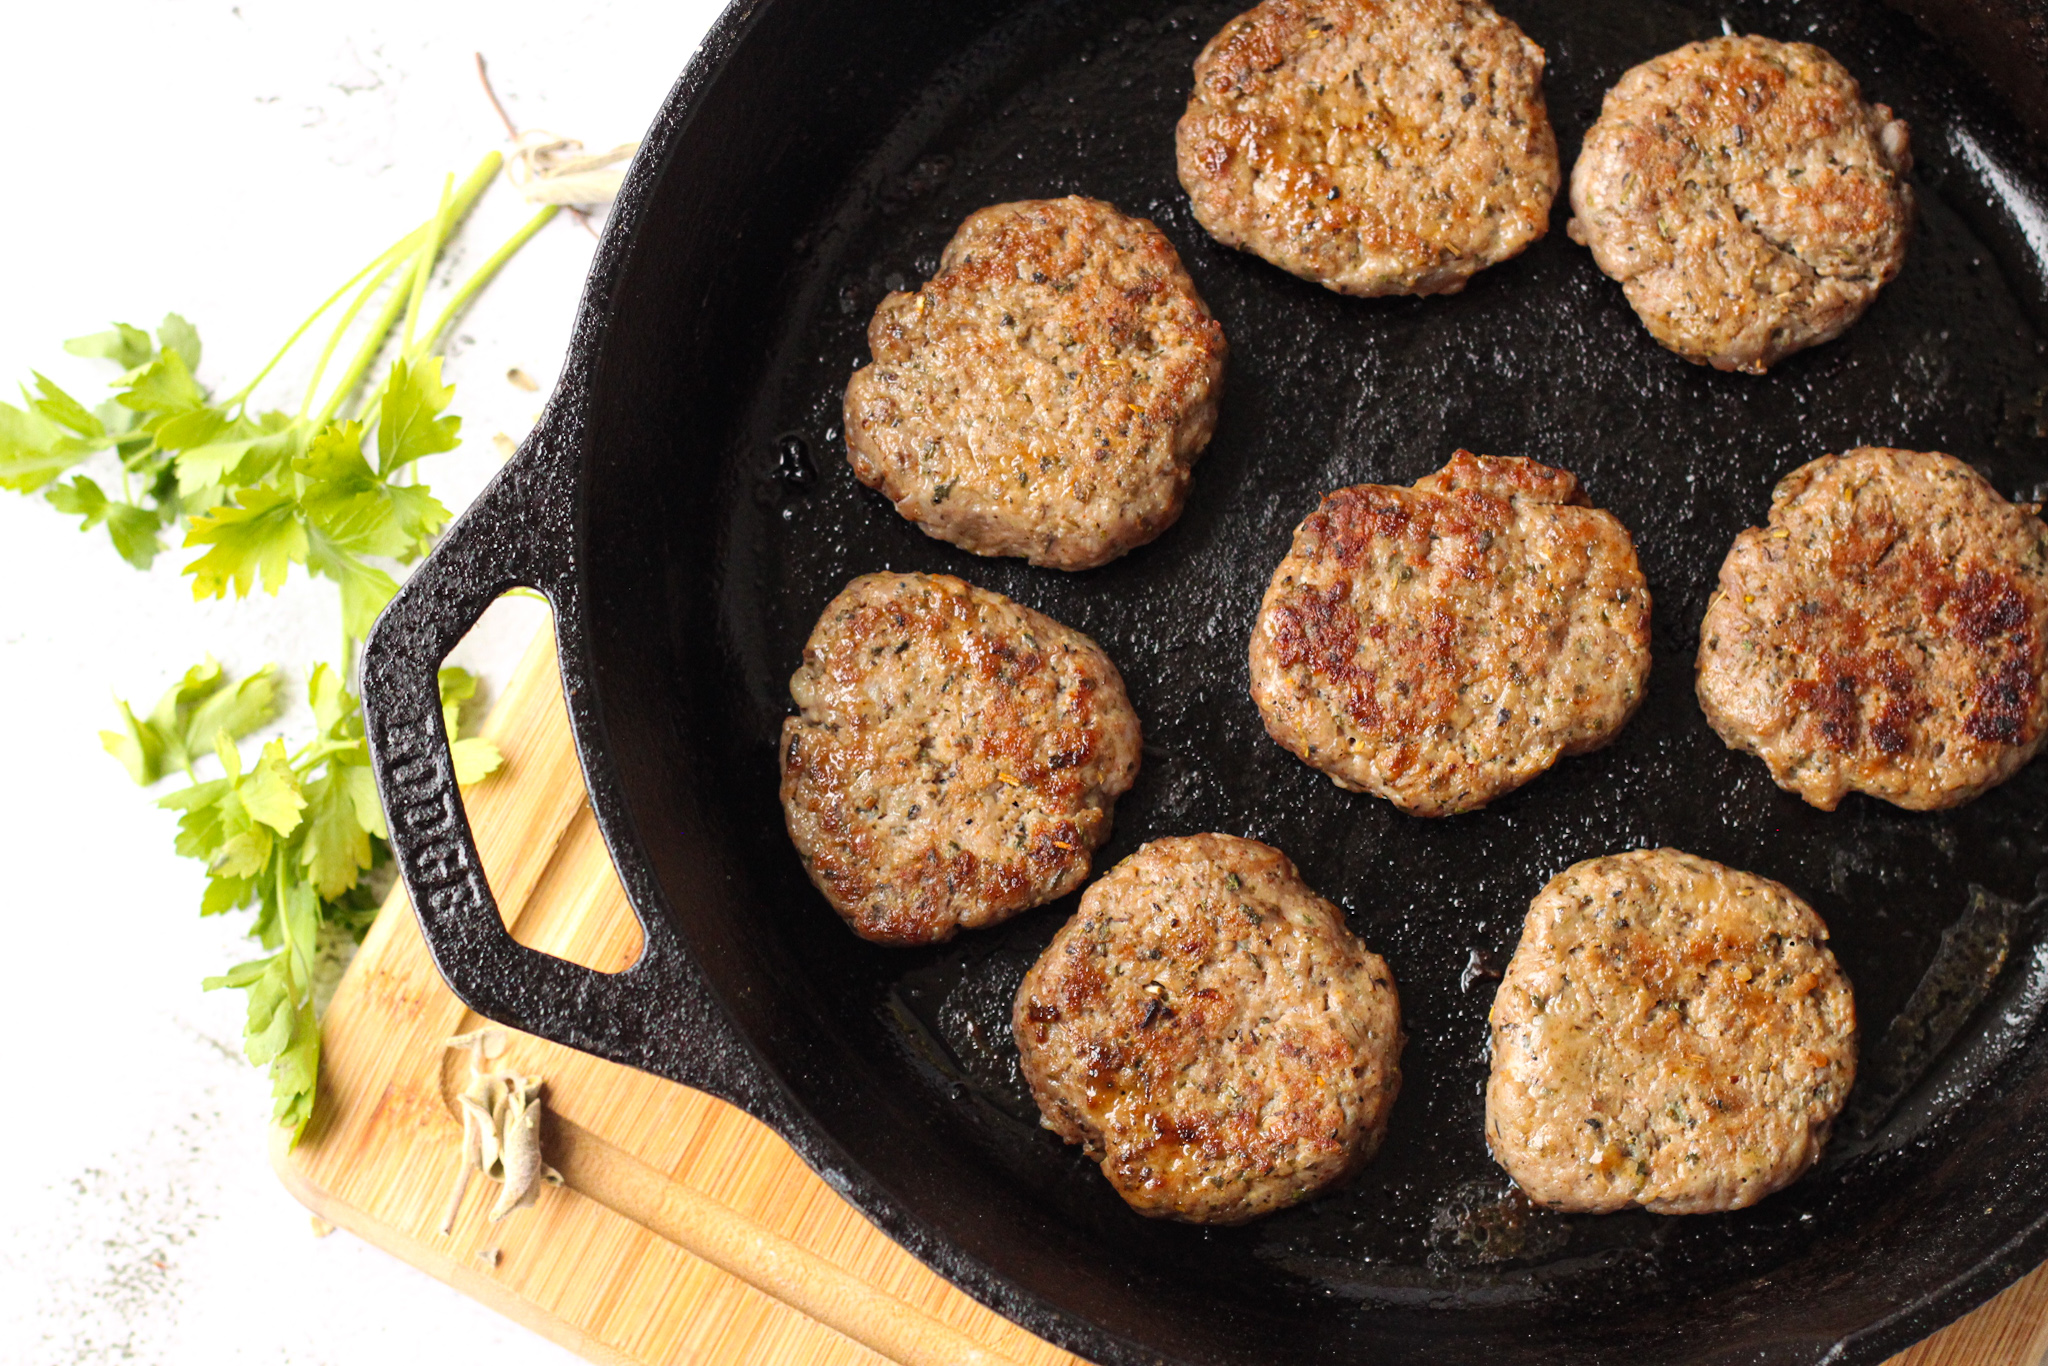 Maple & Sage Turkey Sausage: Breakfast made Amazing